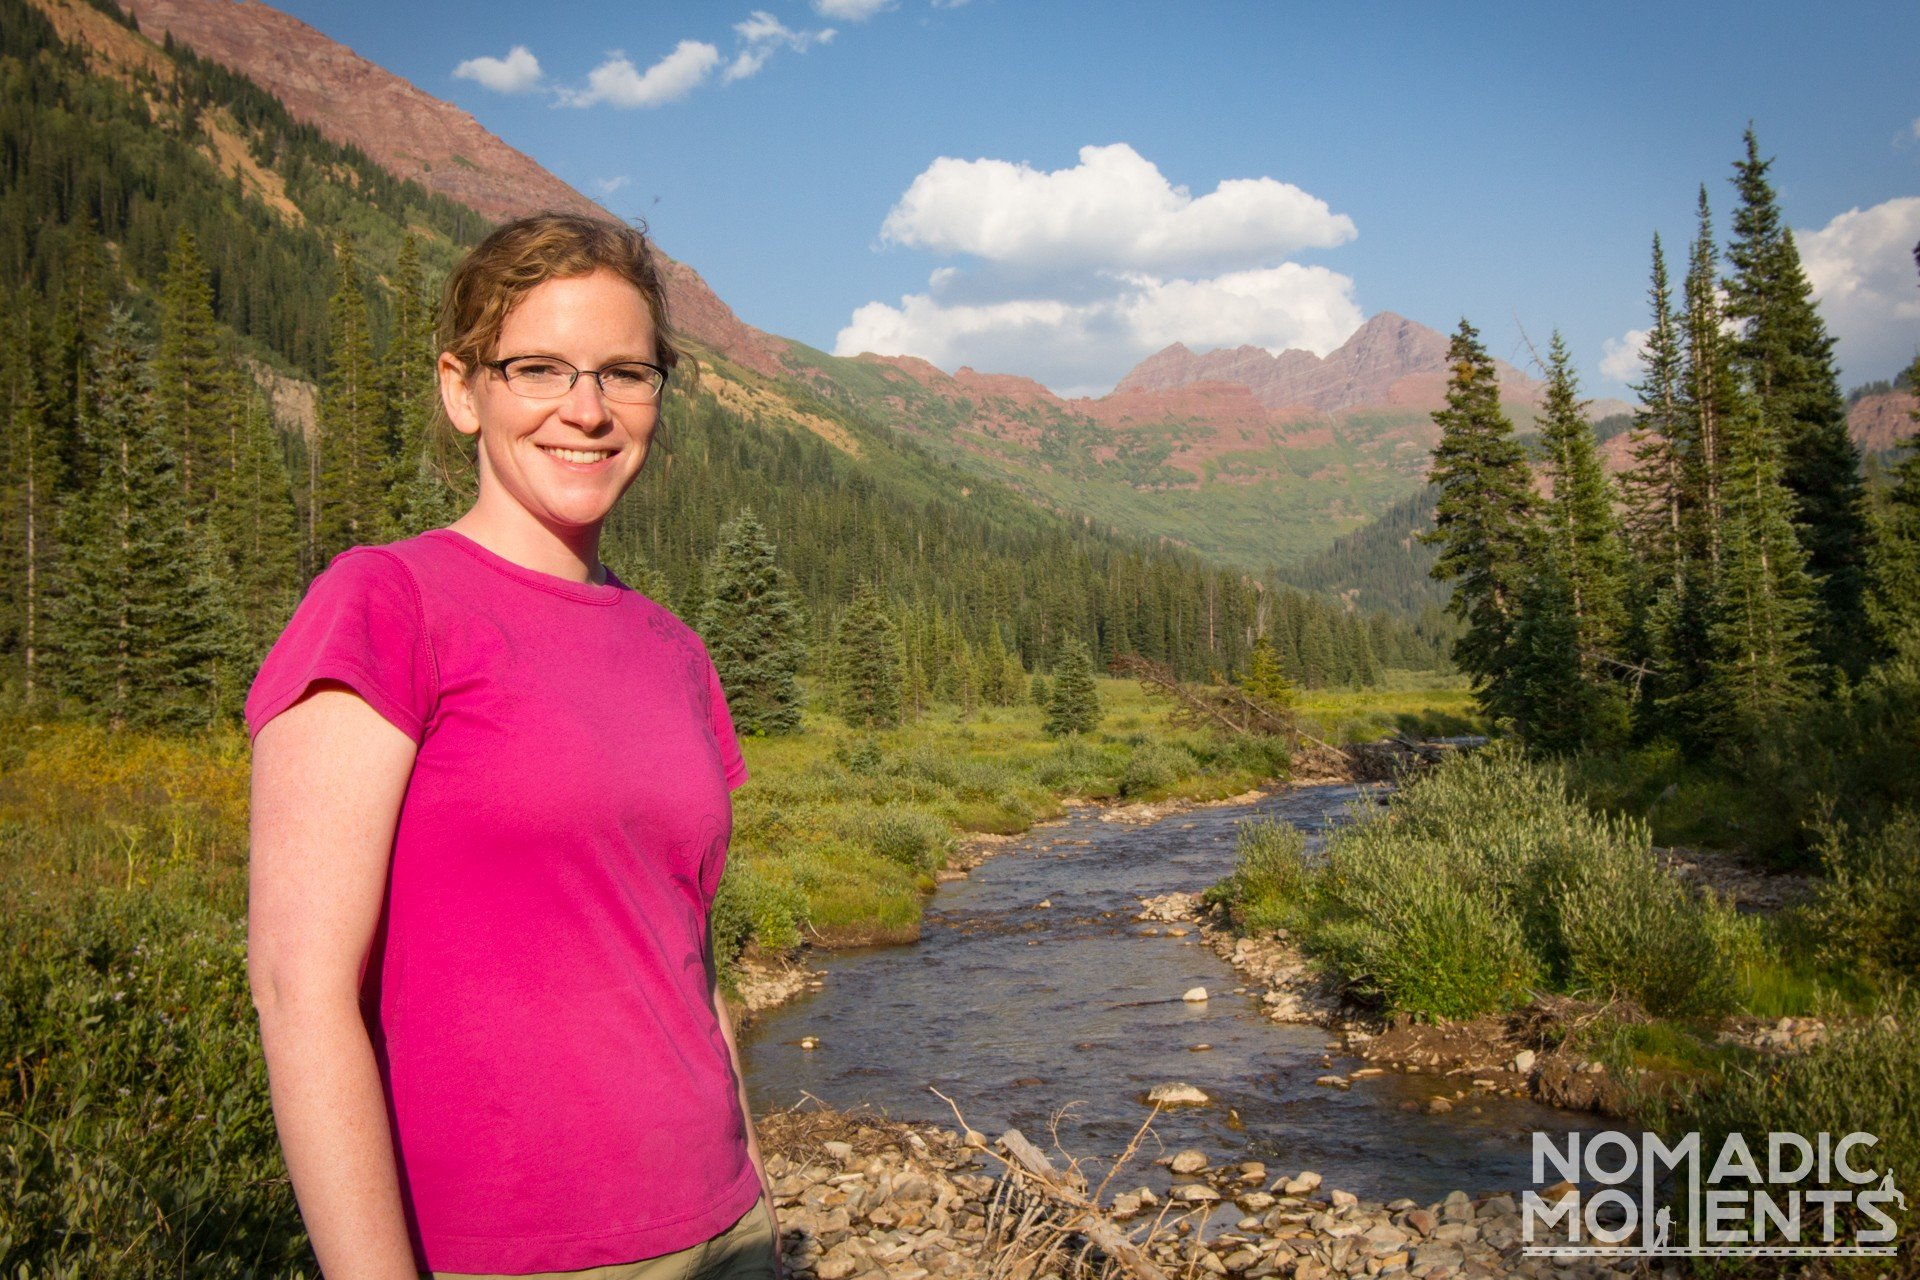 Hiking the Four Pass Loop - Day 2 - Nomadic Moments